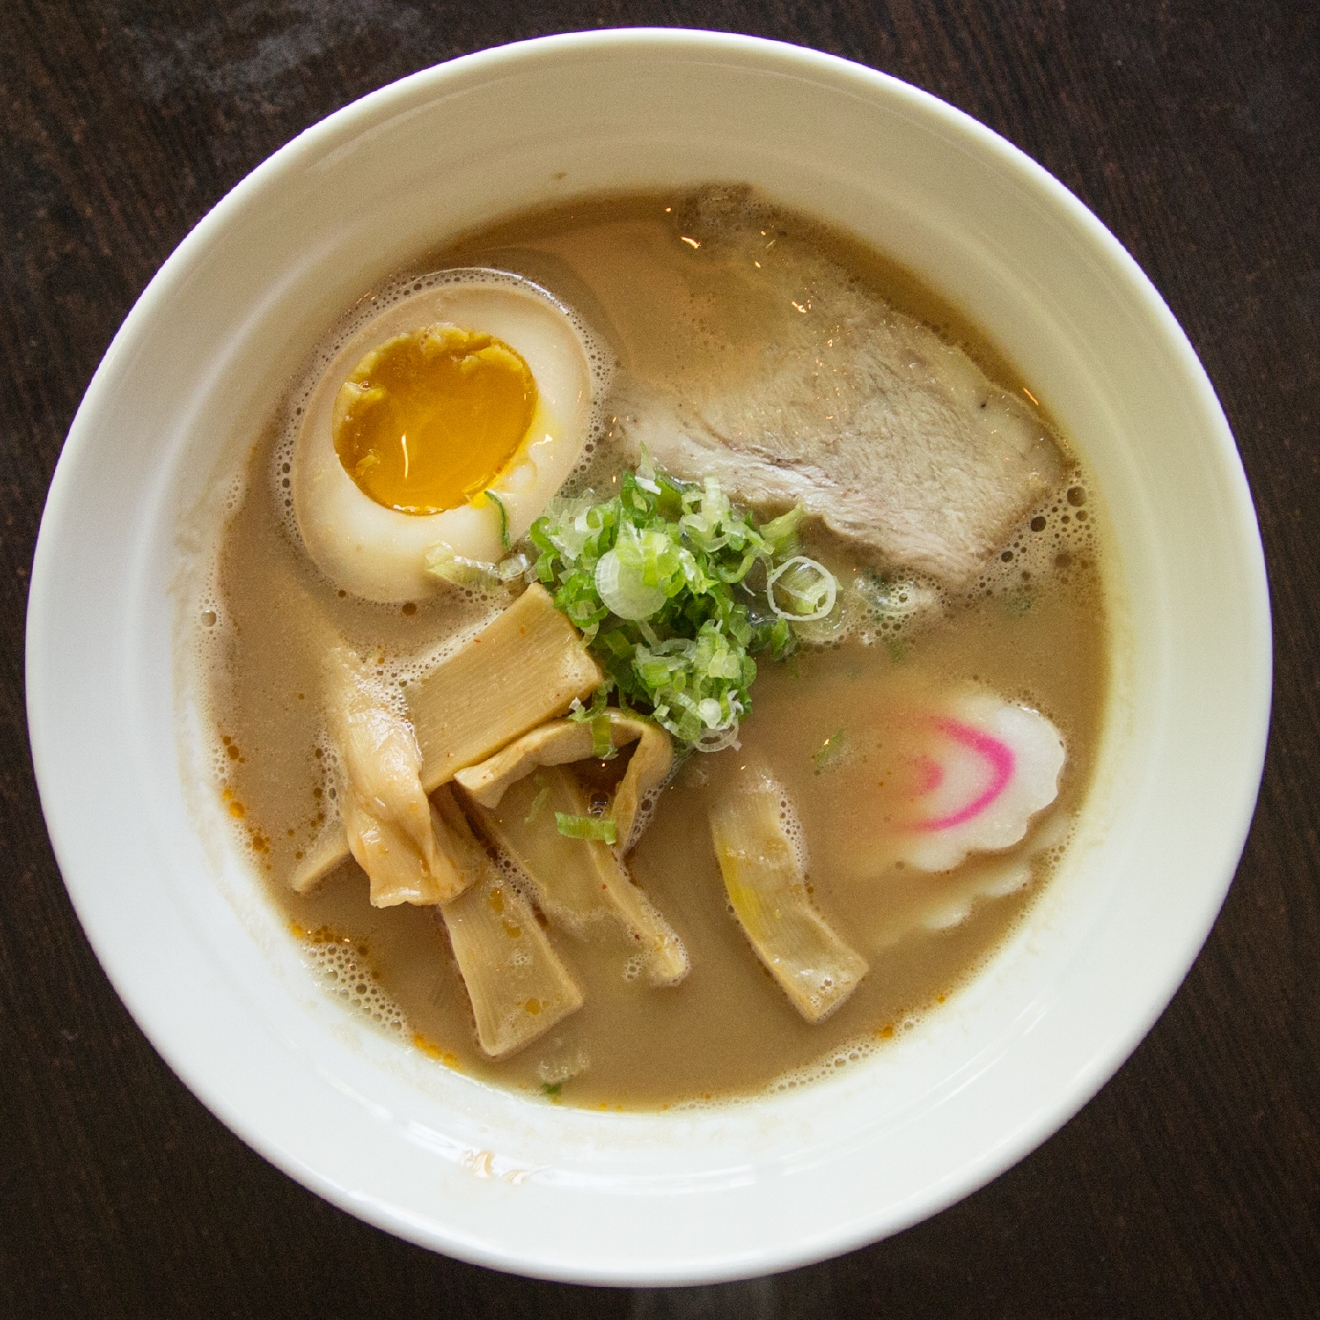 This isn't just any ramen. This ramen is made with a special tonkotsu broth. & That broth is cooked for over twelve hours with Berkshire pork. (Respect.) / Image: Catherine Viox